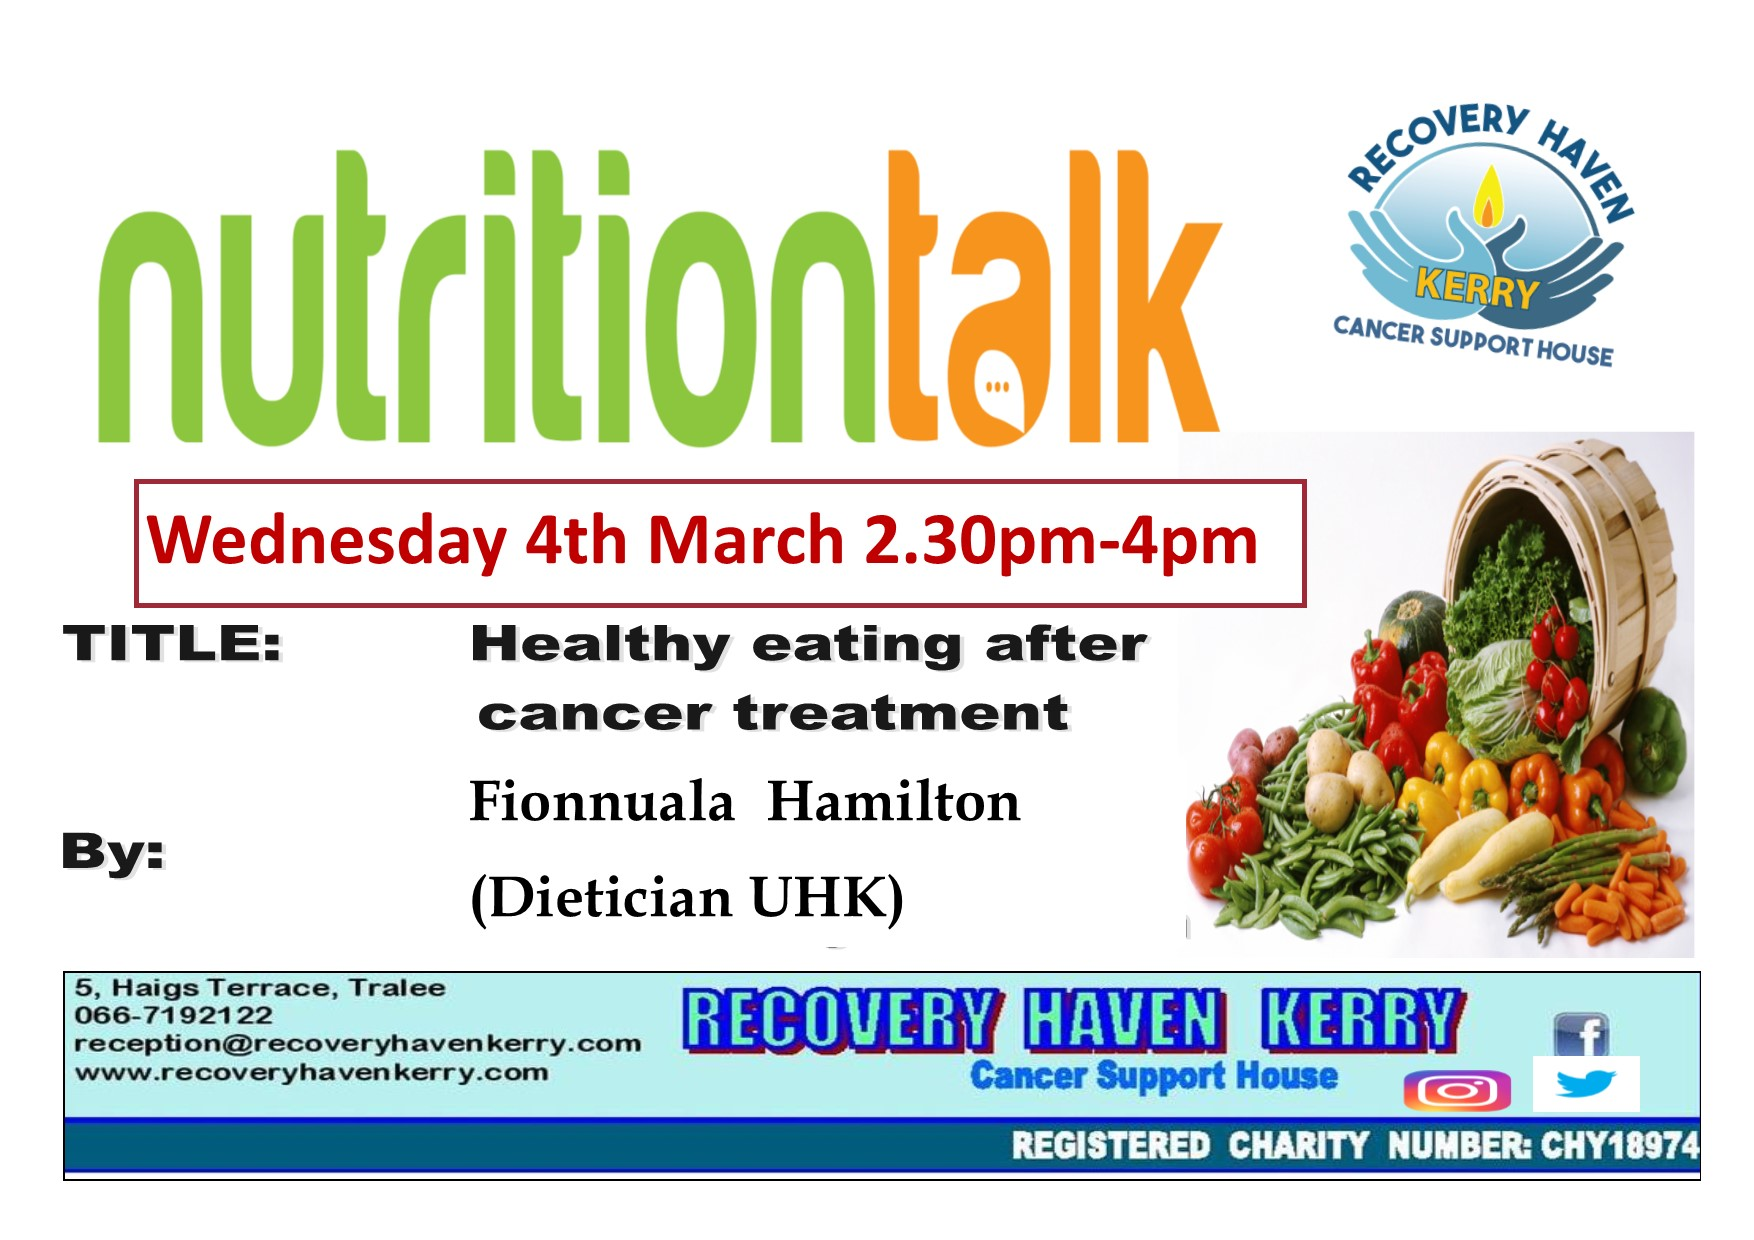 Nutrition talk Wednesday 4th March at 2.